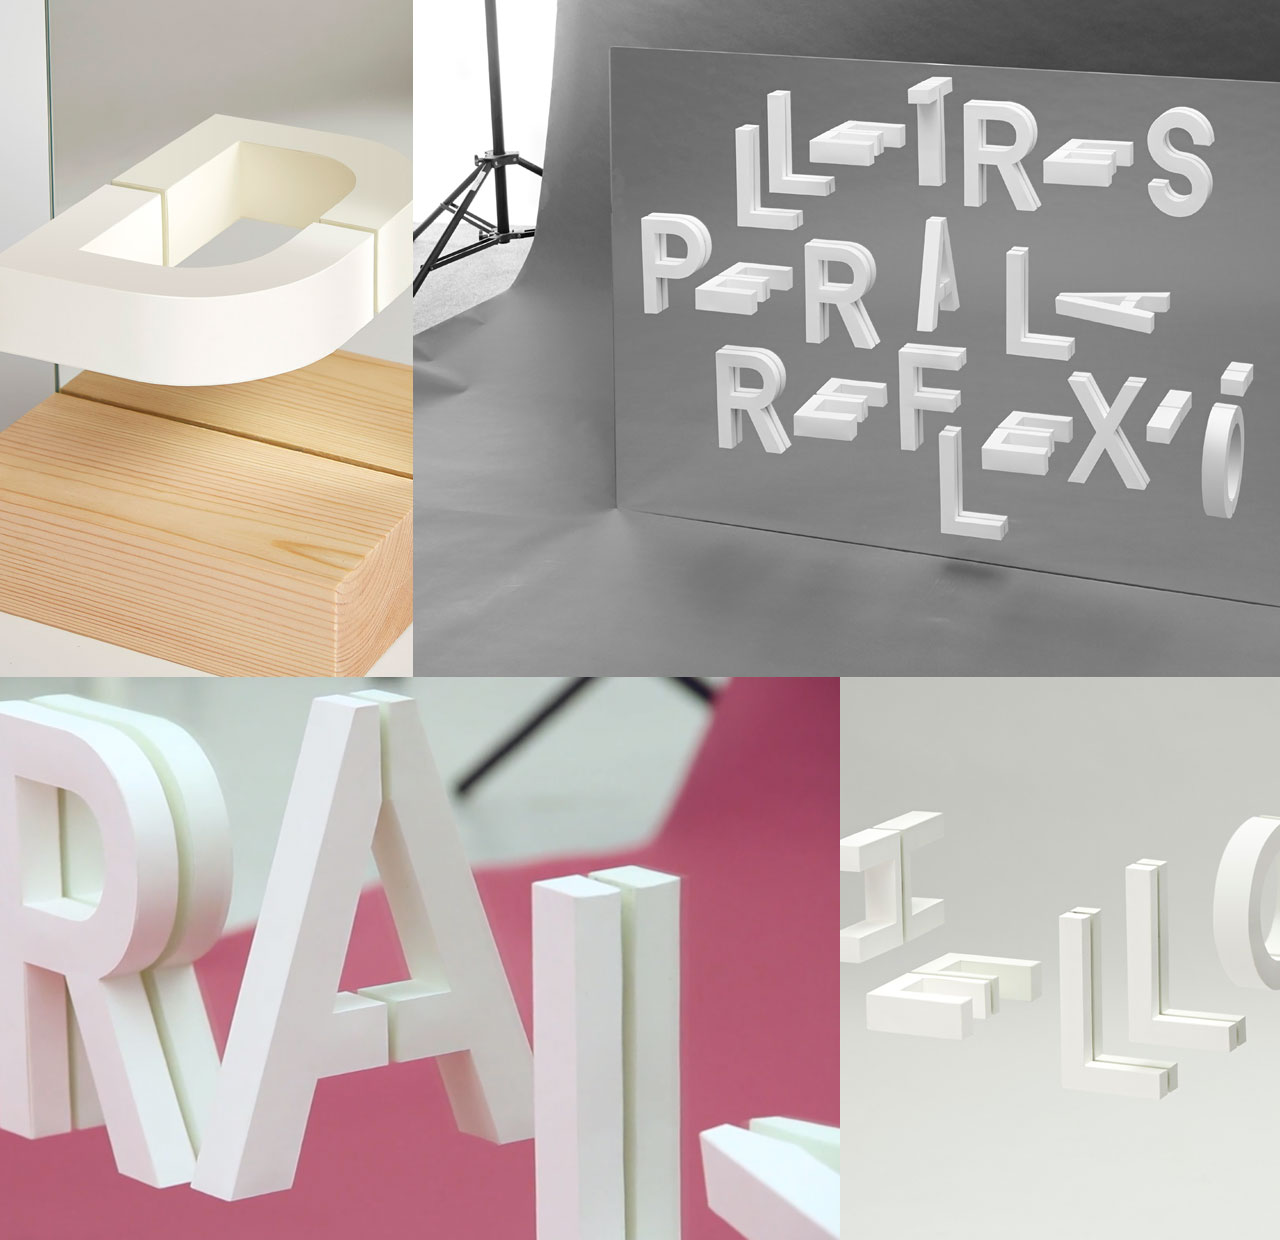 Three-dimensional paper letters stuck to a mirror. The reflection on the mirror completes missing bits.